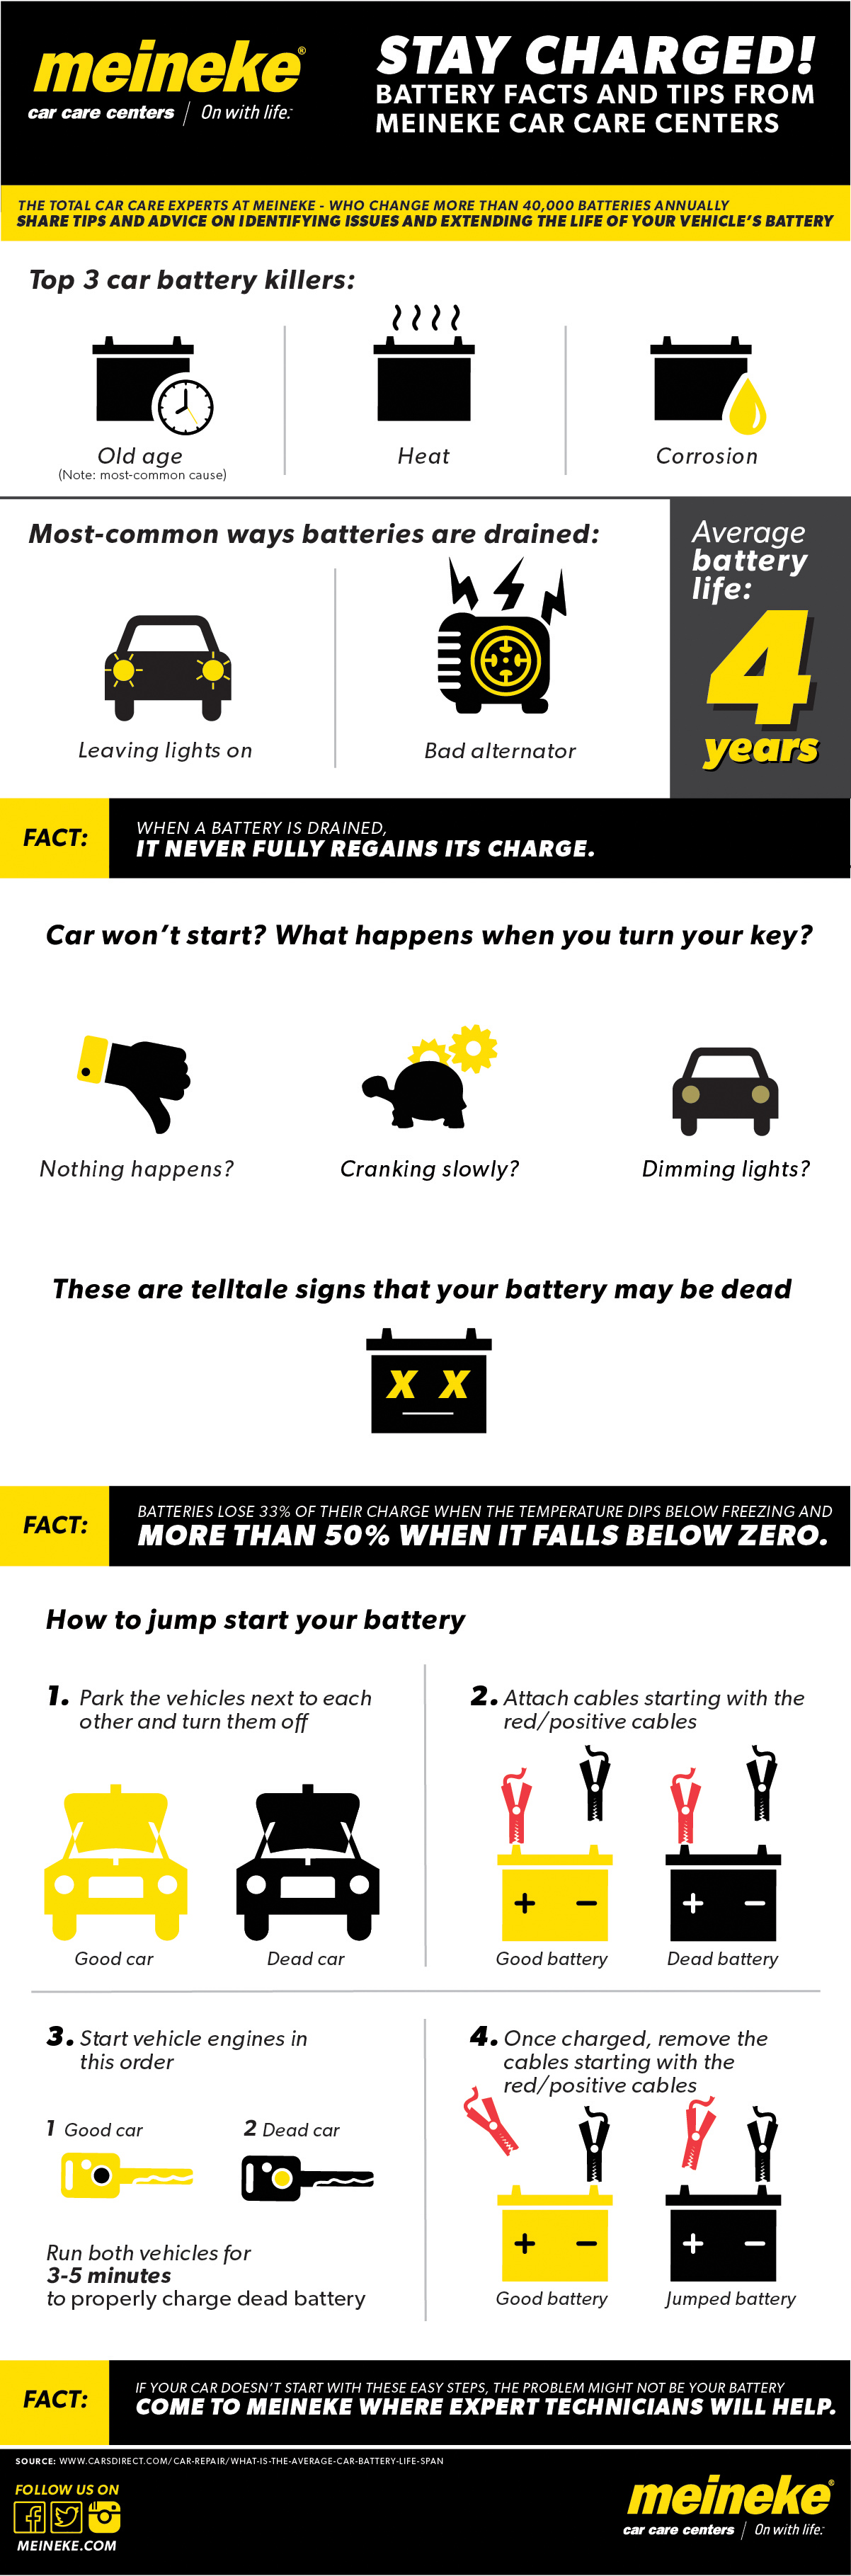 Stay Charged! Battery Facts and Tips